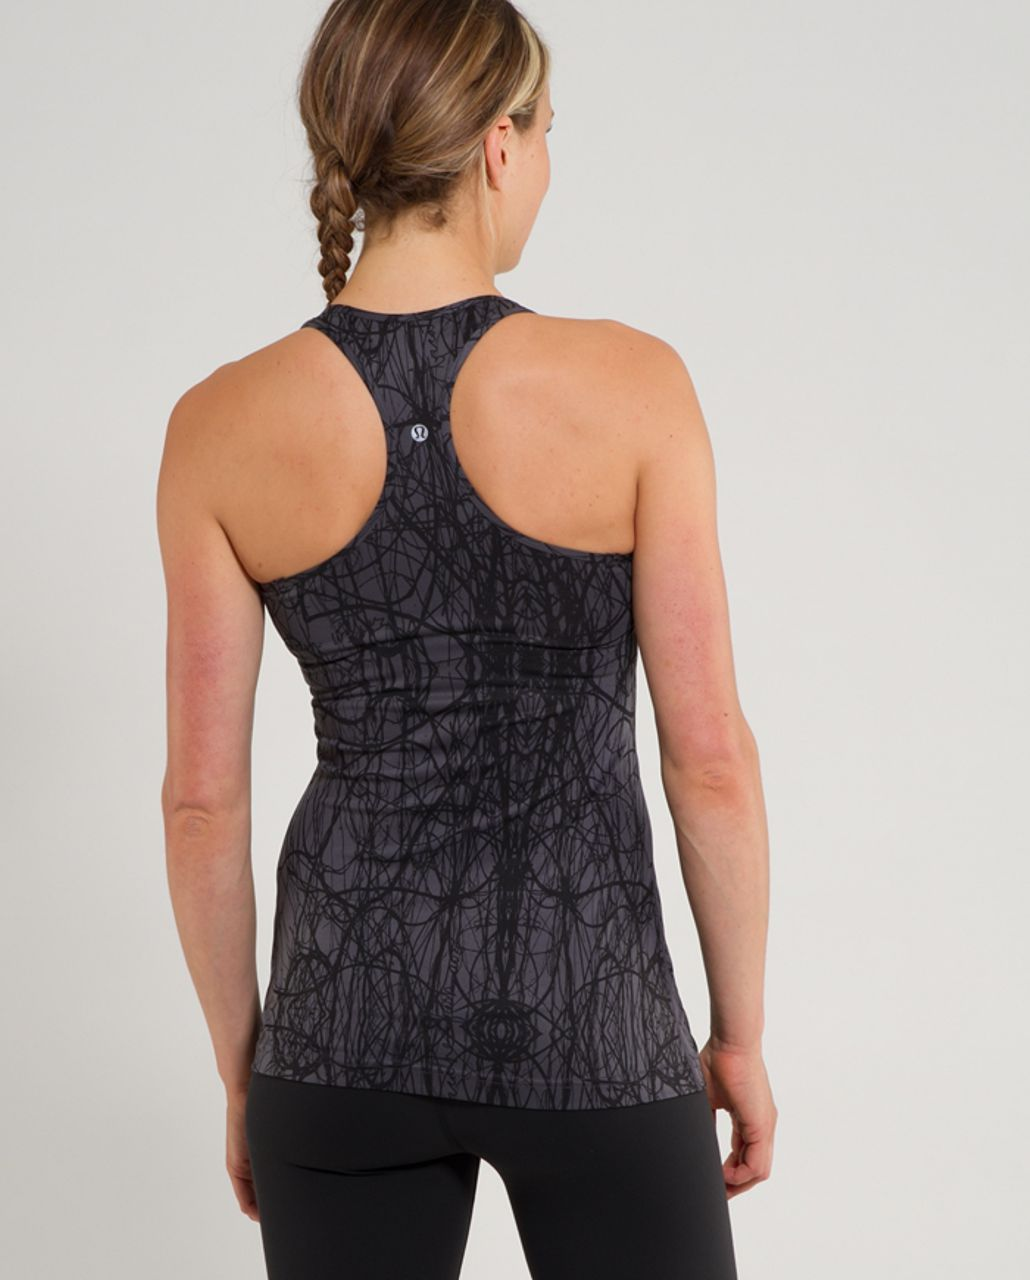 Lululemon Cool Racerback - Coal Ground Nesting Black Bird